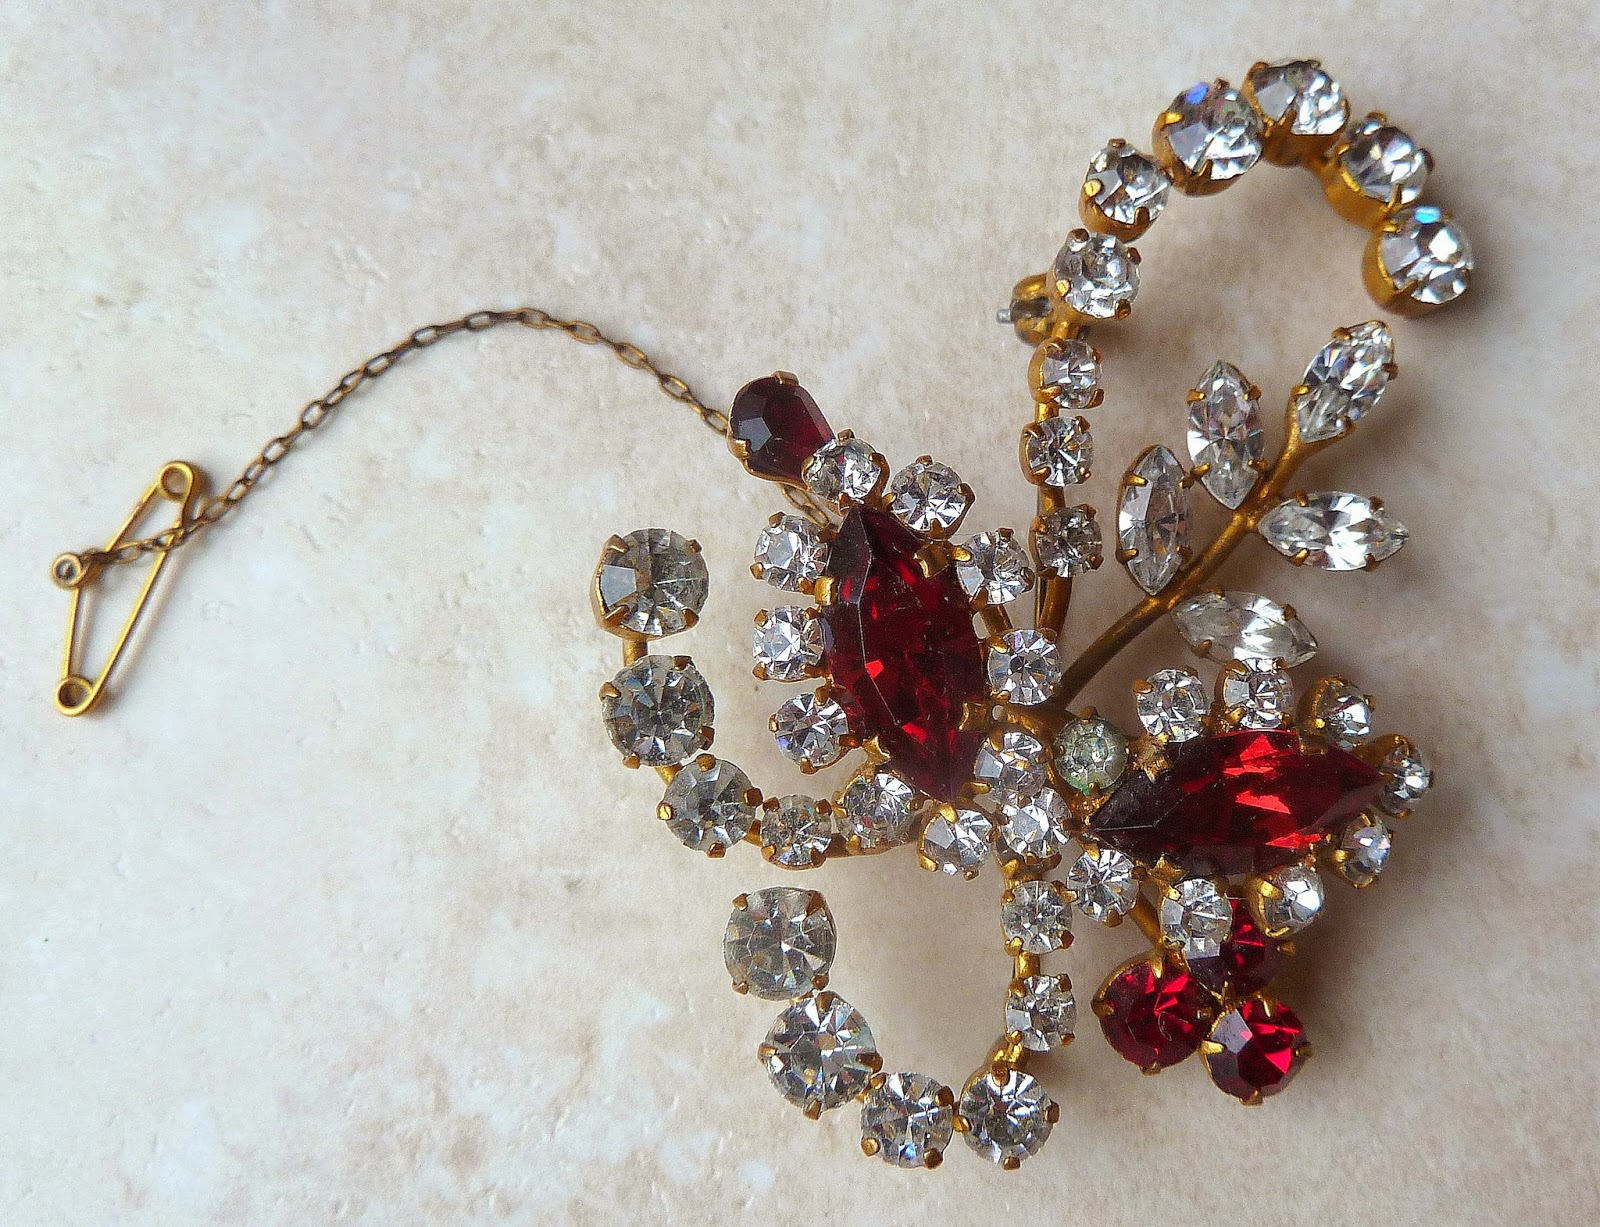 http://www.kcavintagegems.uk/vintage-1940s-layered-floral-spray-brooch-with-safety-chain-397-p.asp